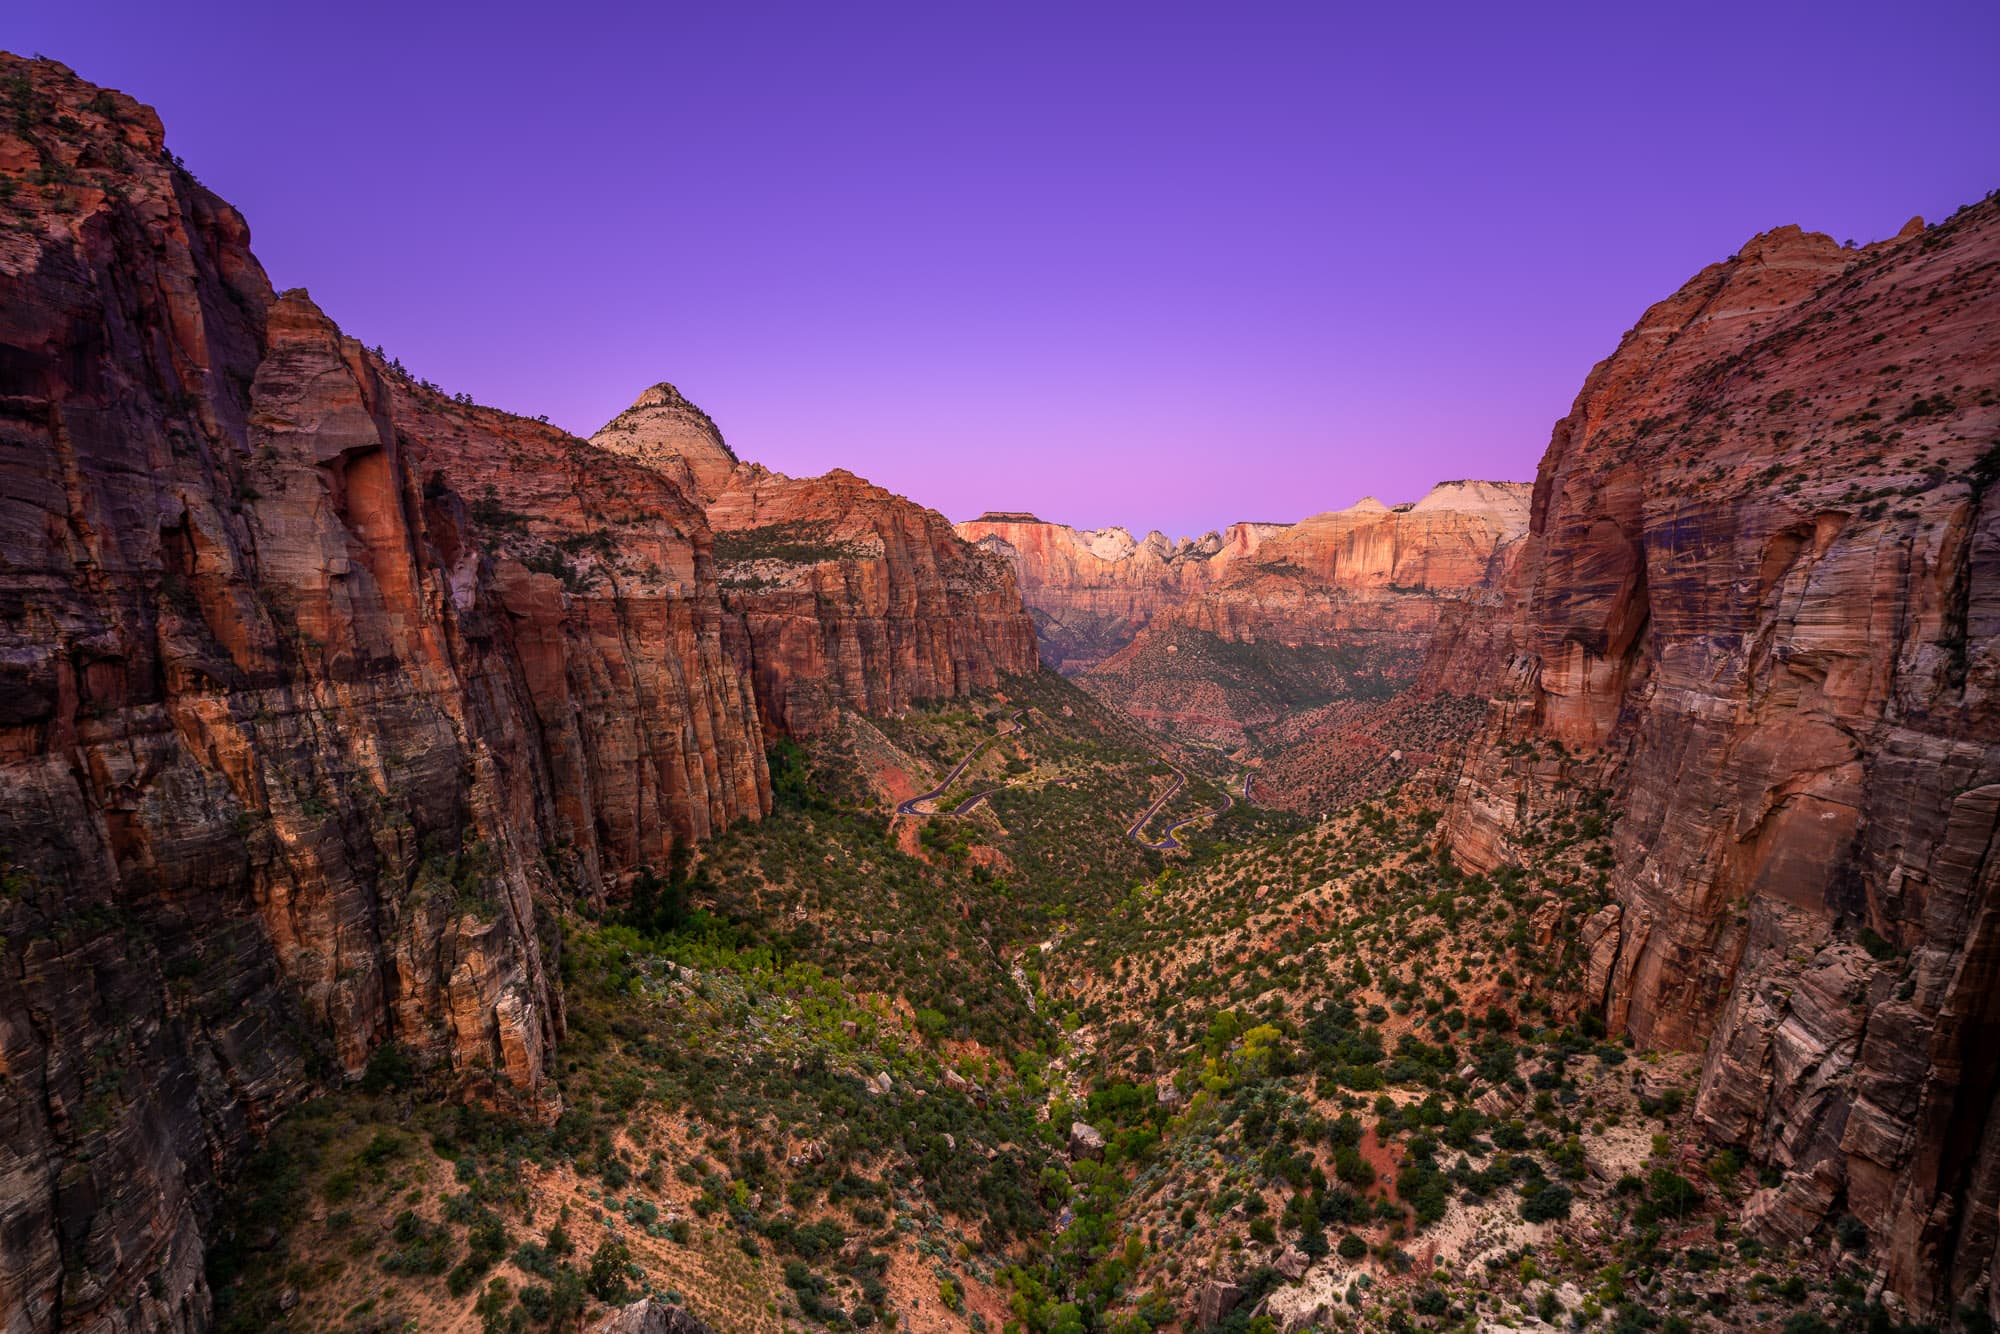 Zion Canyon Overlook before sunrise, Zion National Park